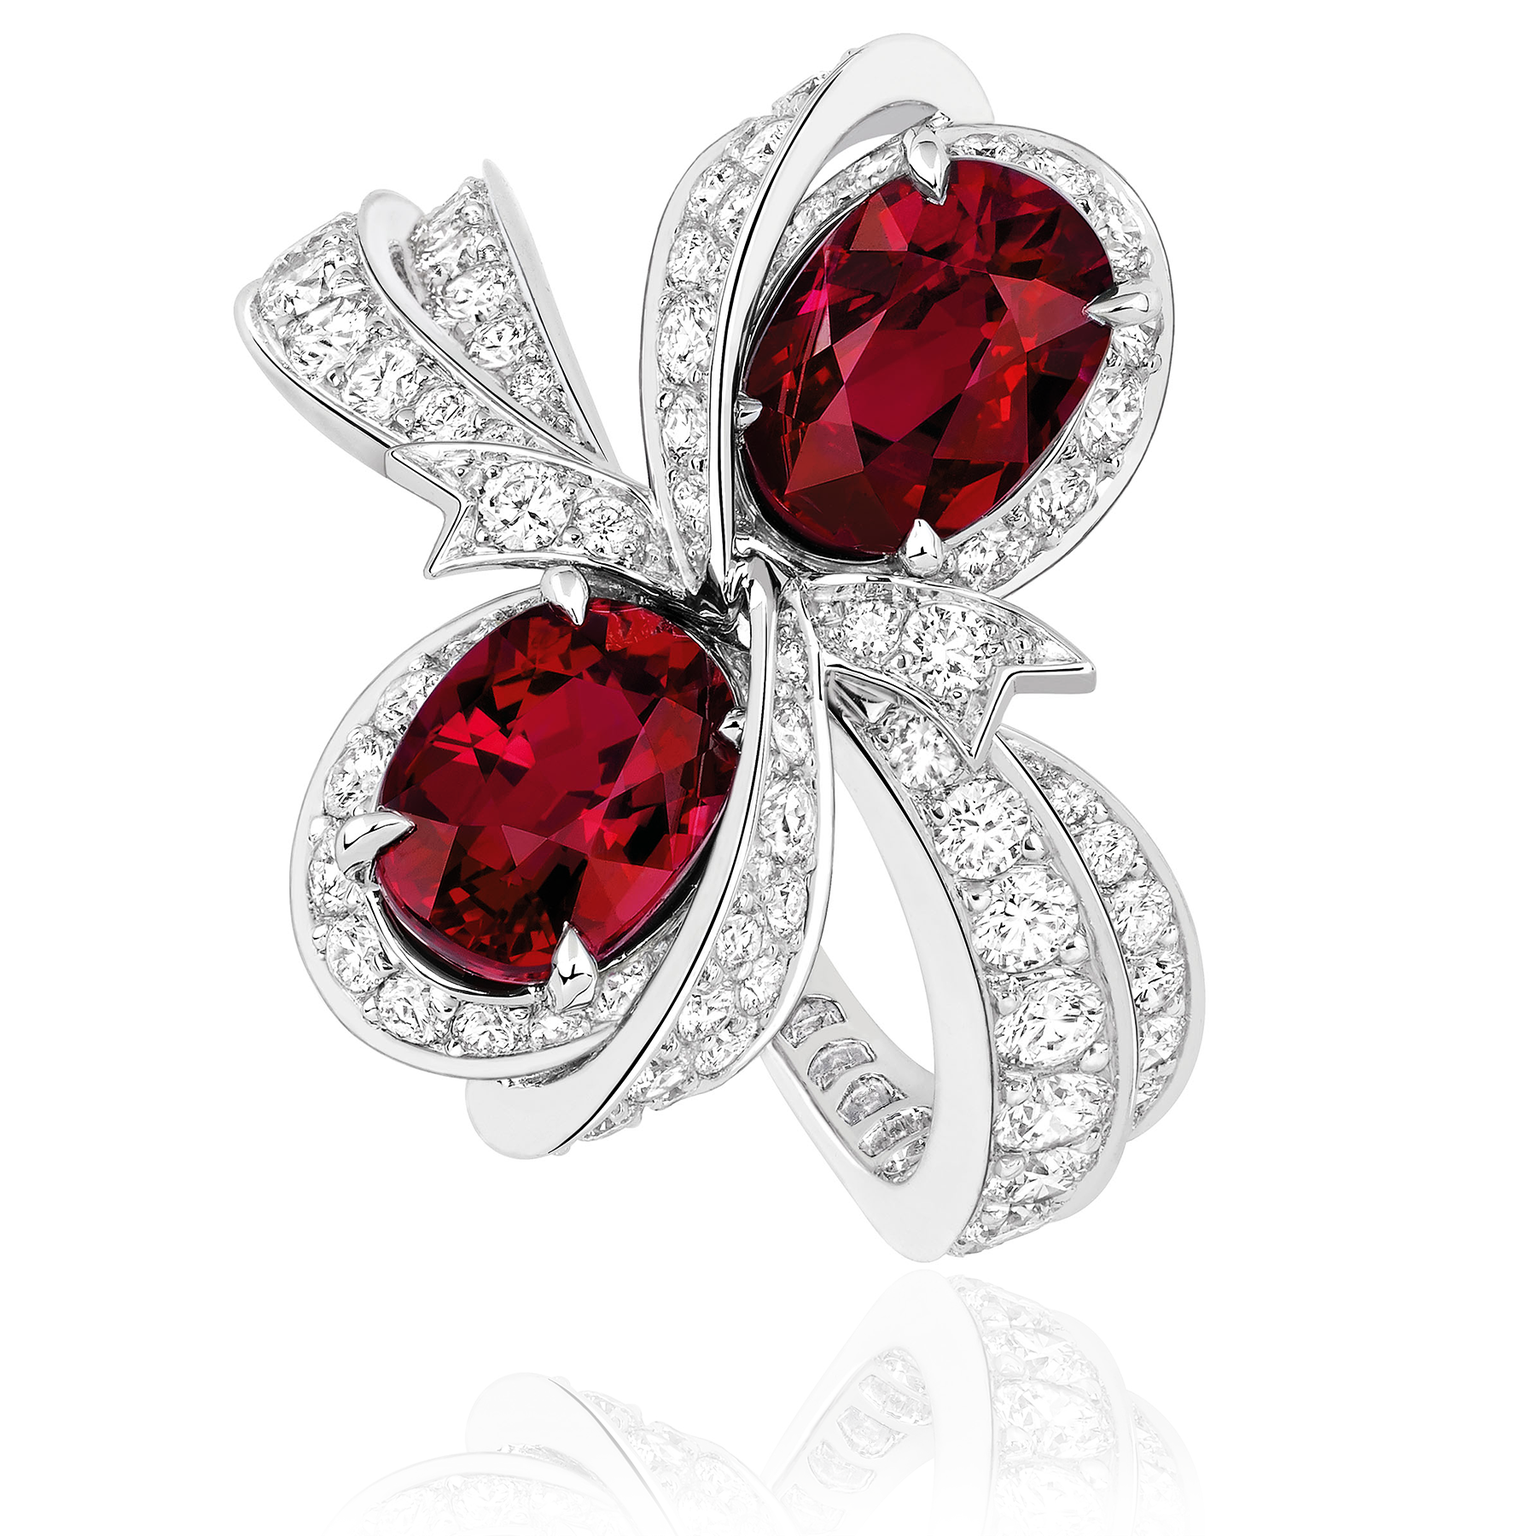 Dior Milieu du Siecle Diamant ruby ring